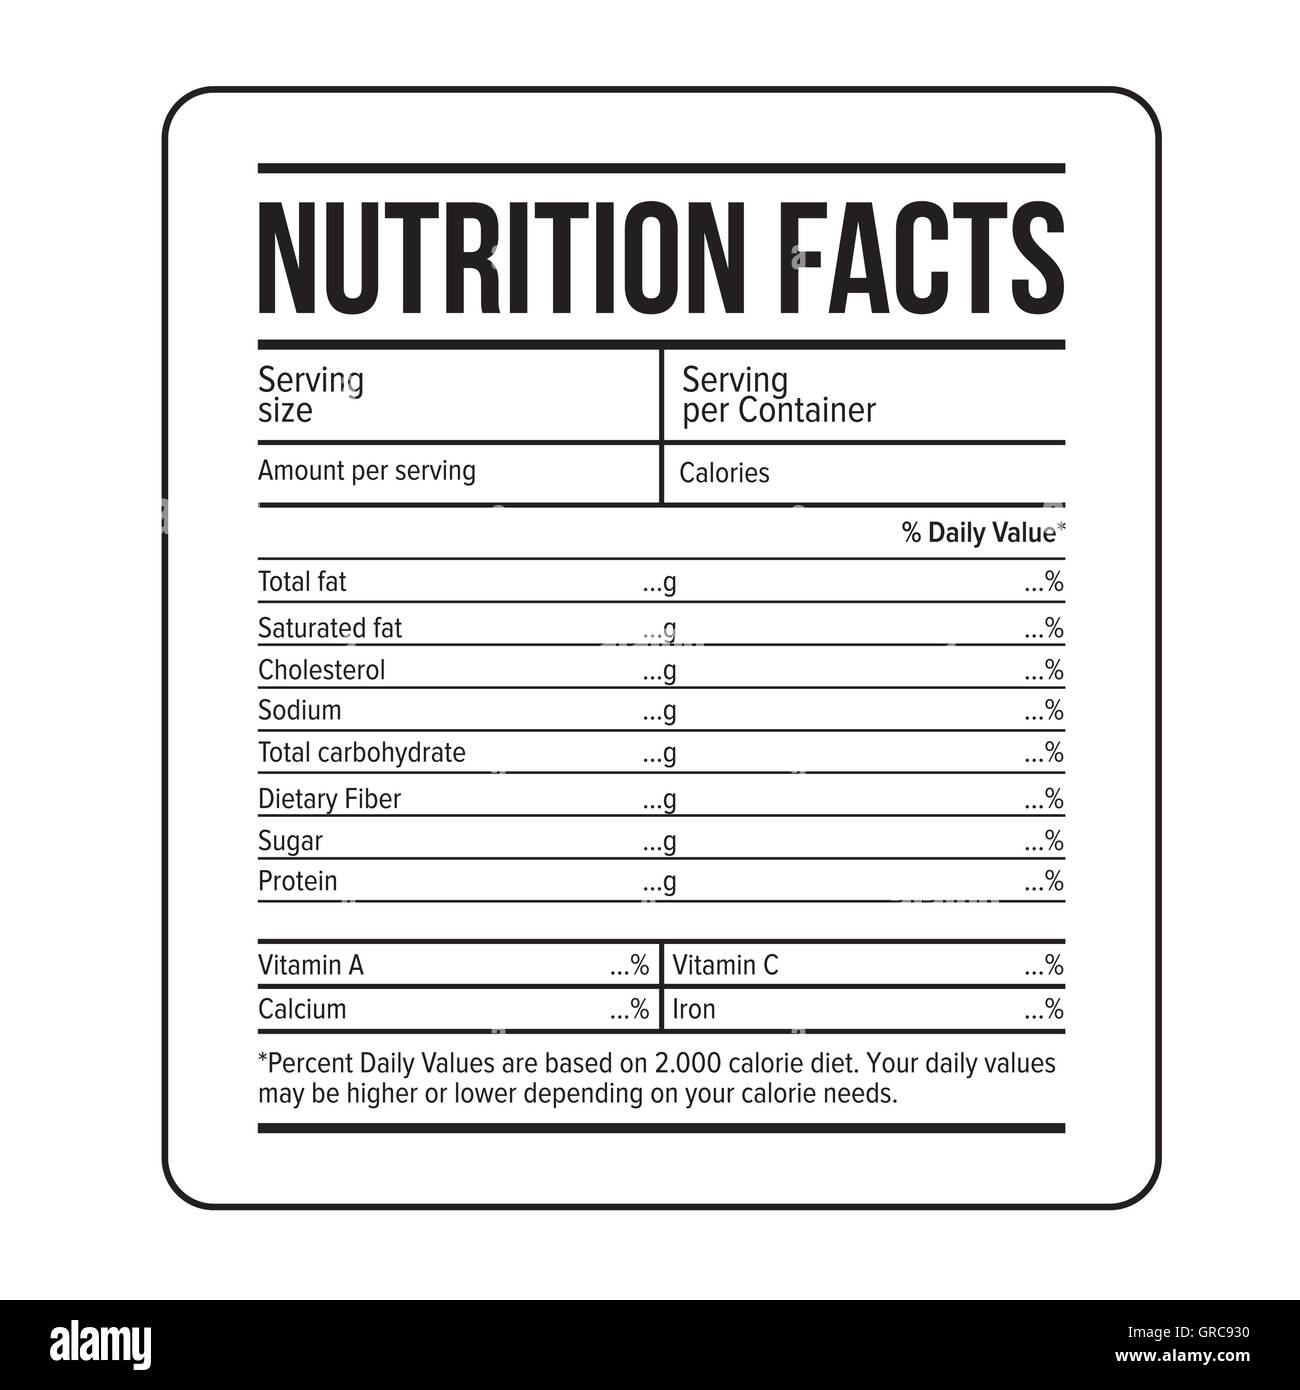 nutrition facts label black and white stock photos & images - alamy